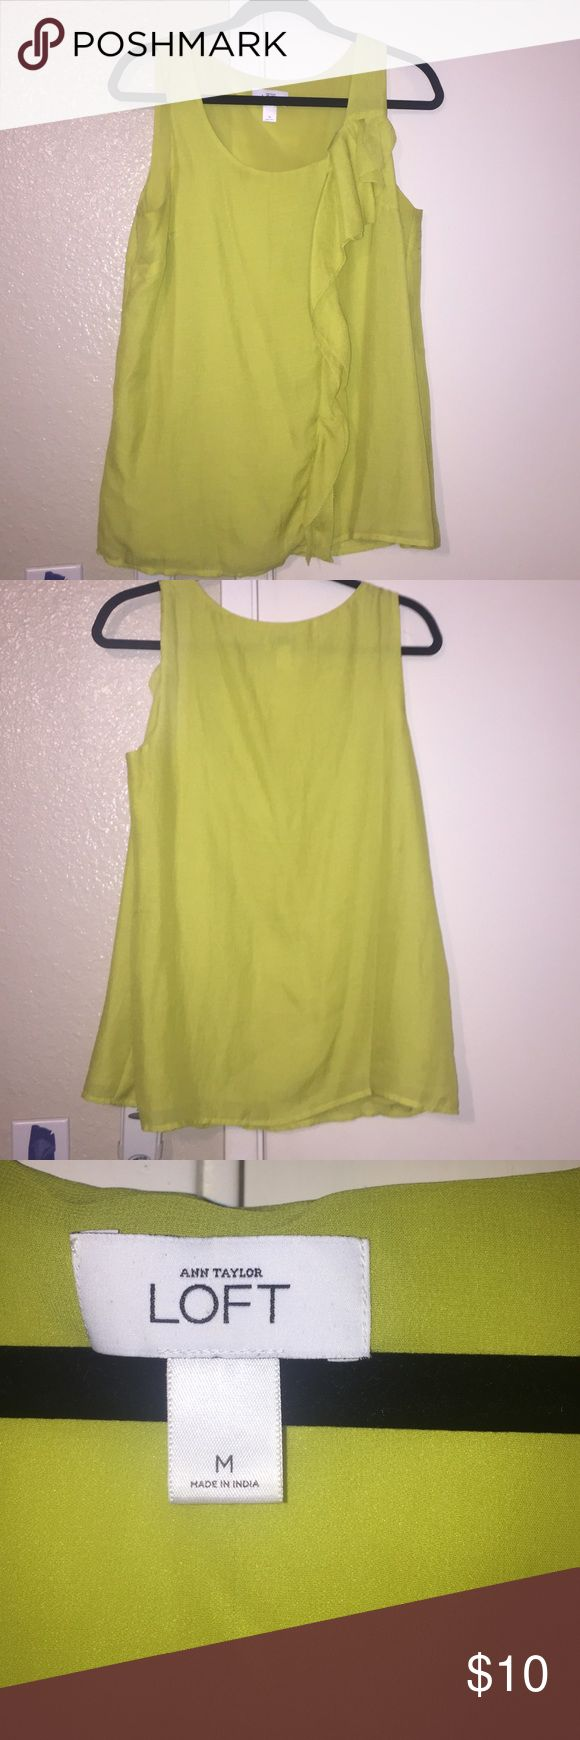 Ann Taylor loft sleeveless top size M Great top to wear to work with a cute jkt or on its own for a night out . Size M color is between a light green and yellow Ann Taylor Tops Camisoles